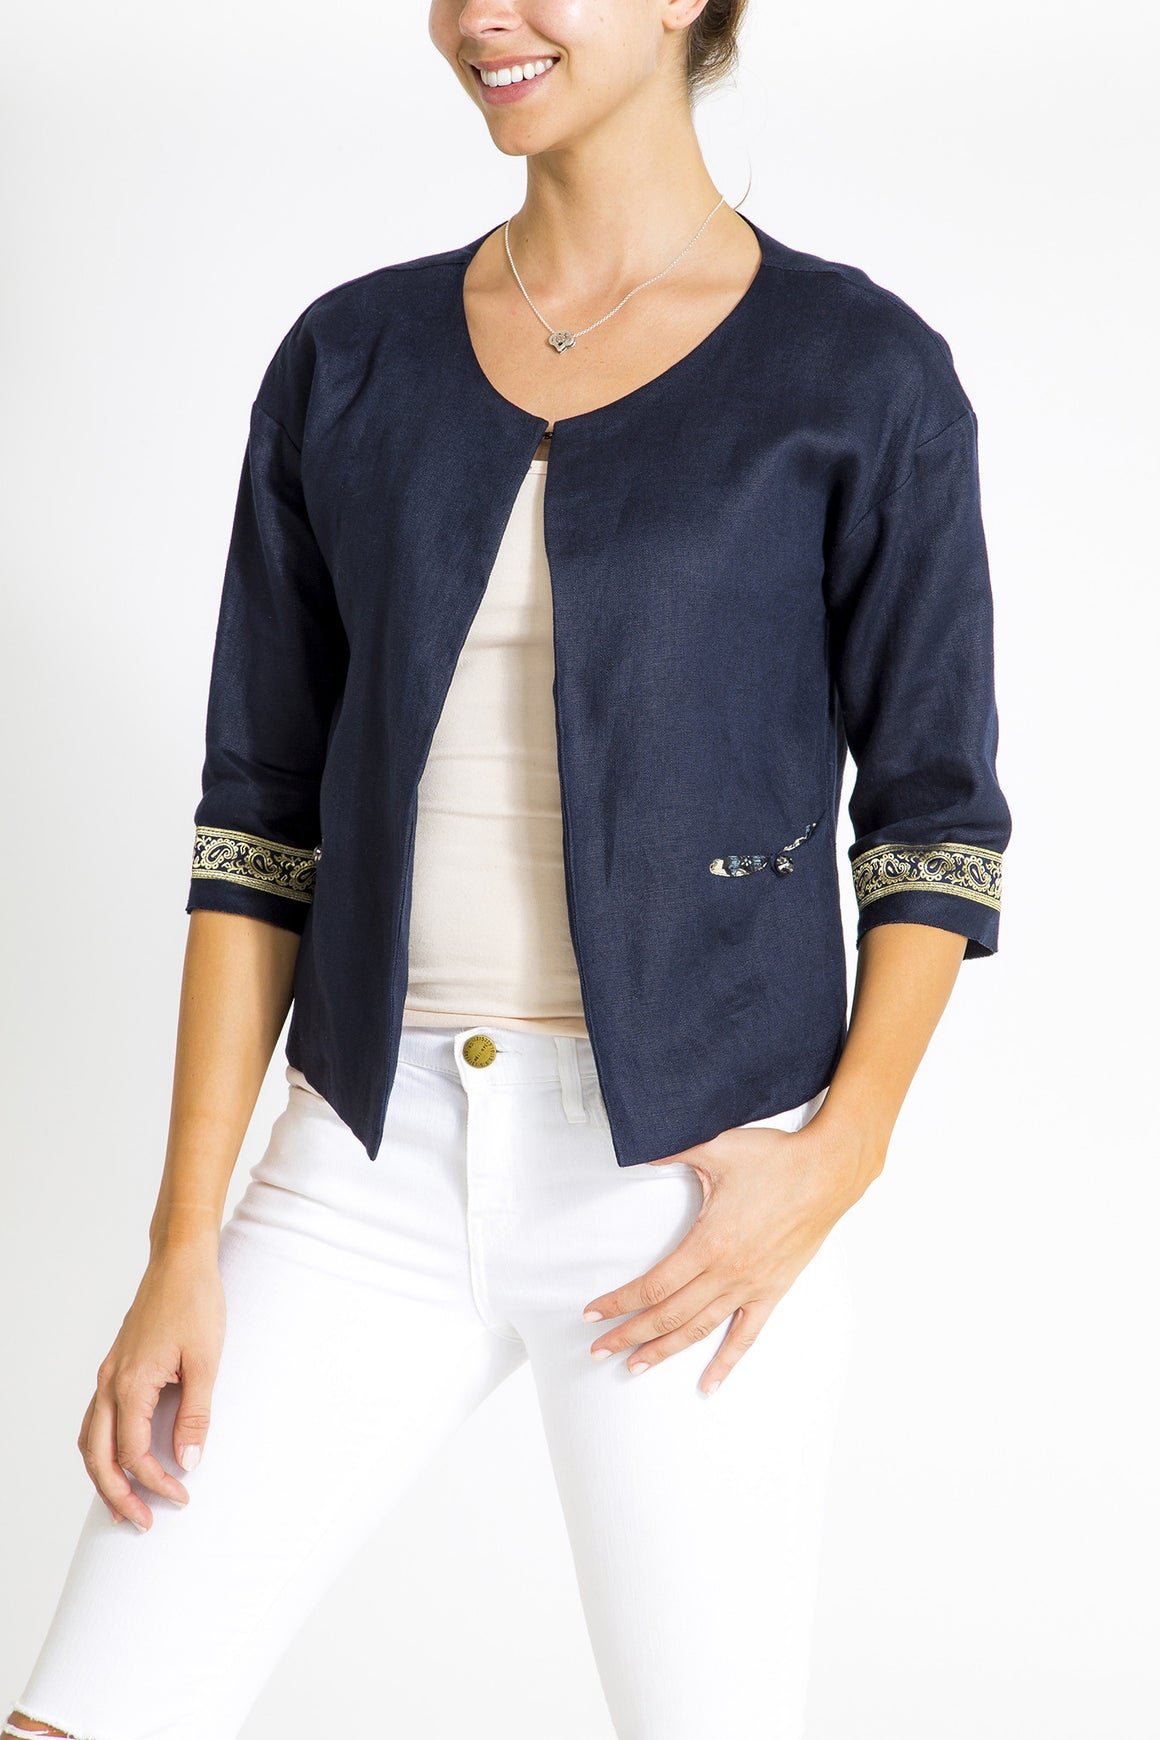 Linen Jacket - Gold Braid